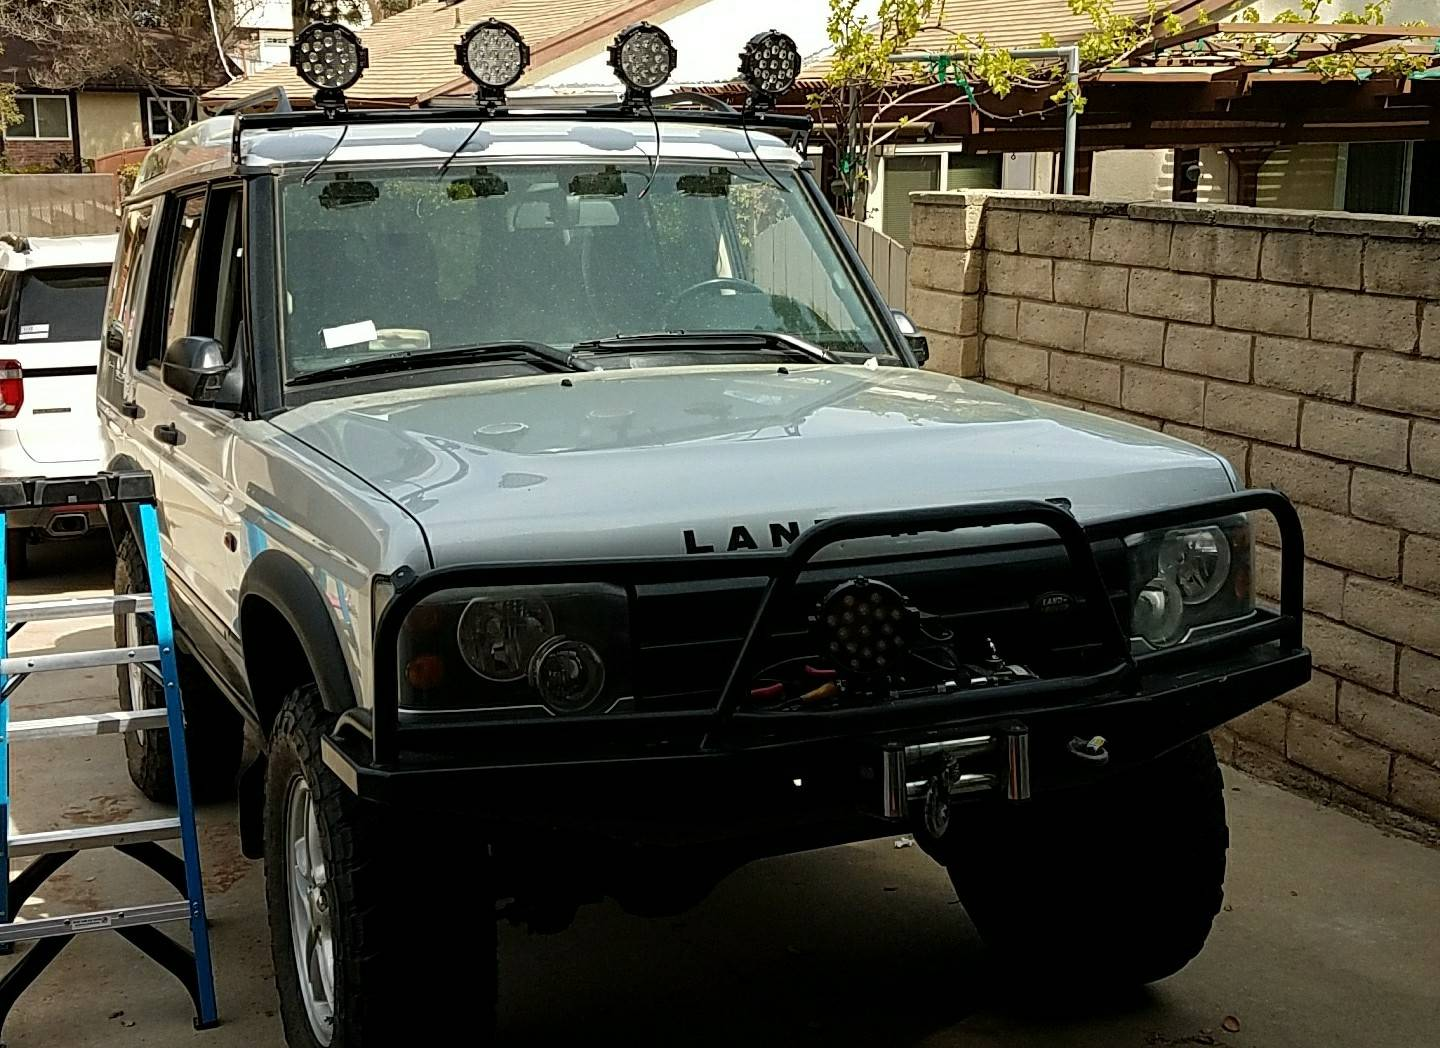 Reduced terrafirma light bar for disco 2 land rover forums for sale terrafirma light bar for disco 2 holds 4 lights install to rain gutter been on my disco for only a week decided to get a baja rack mozeypictures Image collections